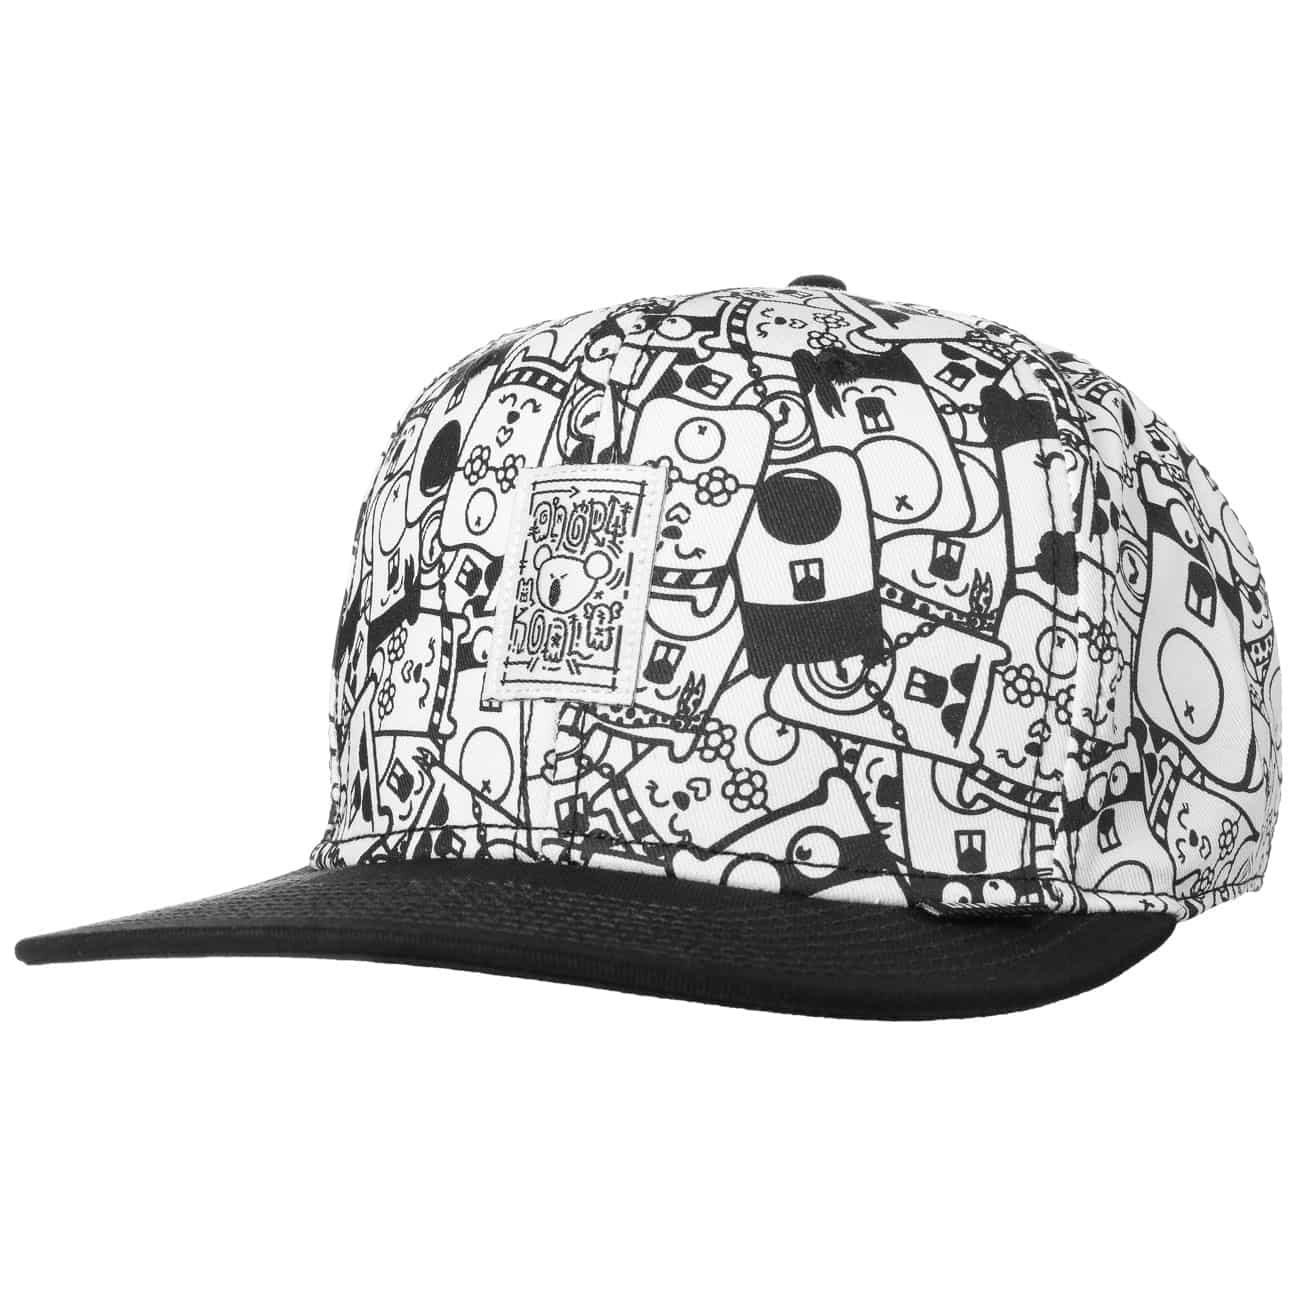 Casquette Snapback 6P Angry Koala by Djinns  casquette visière plate